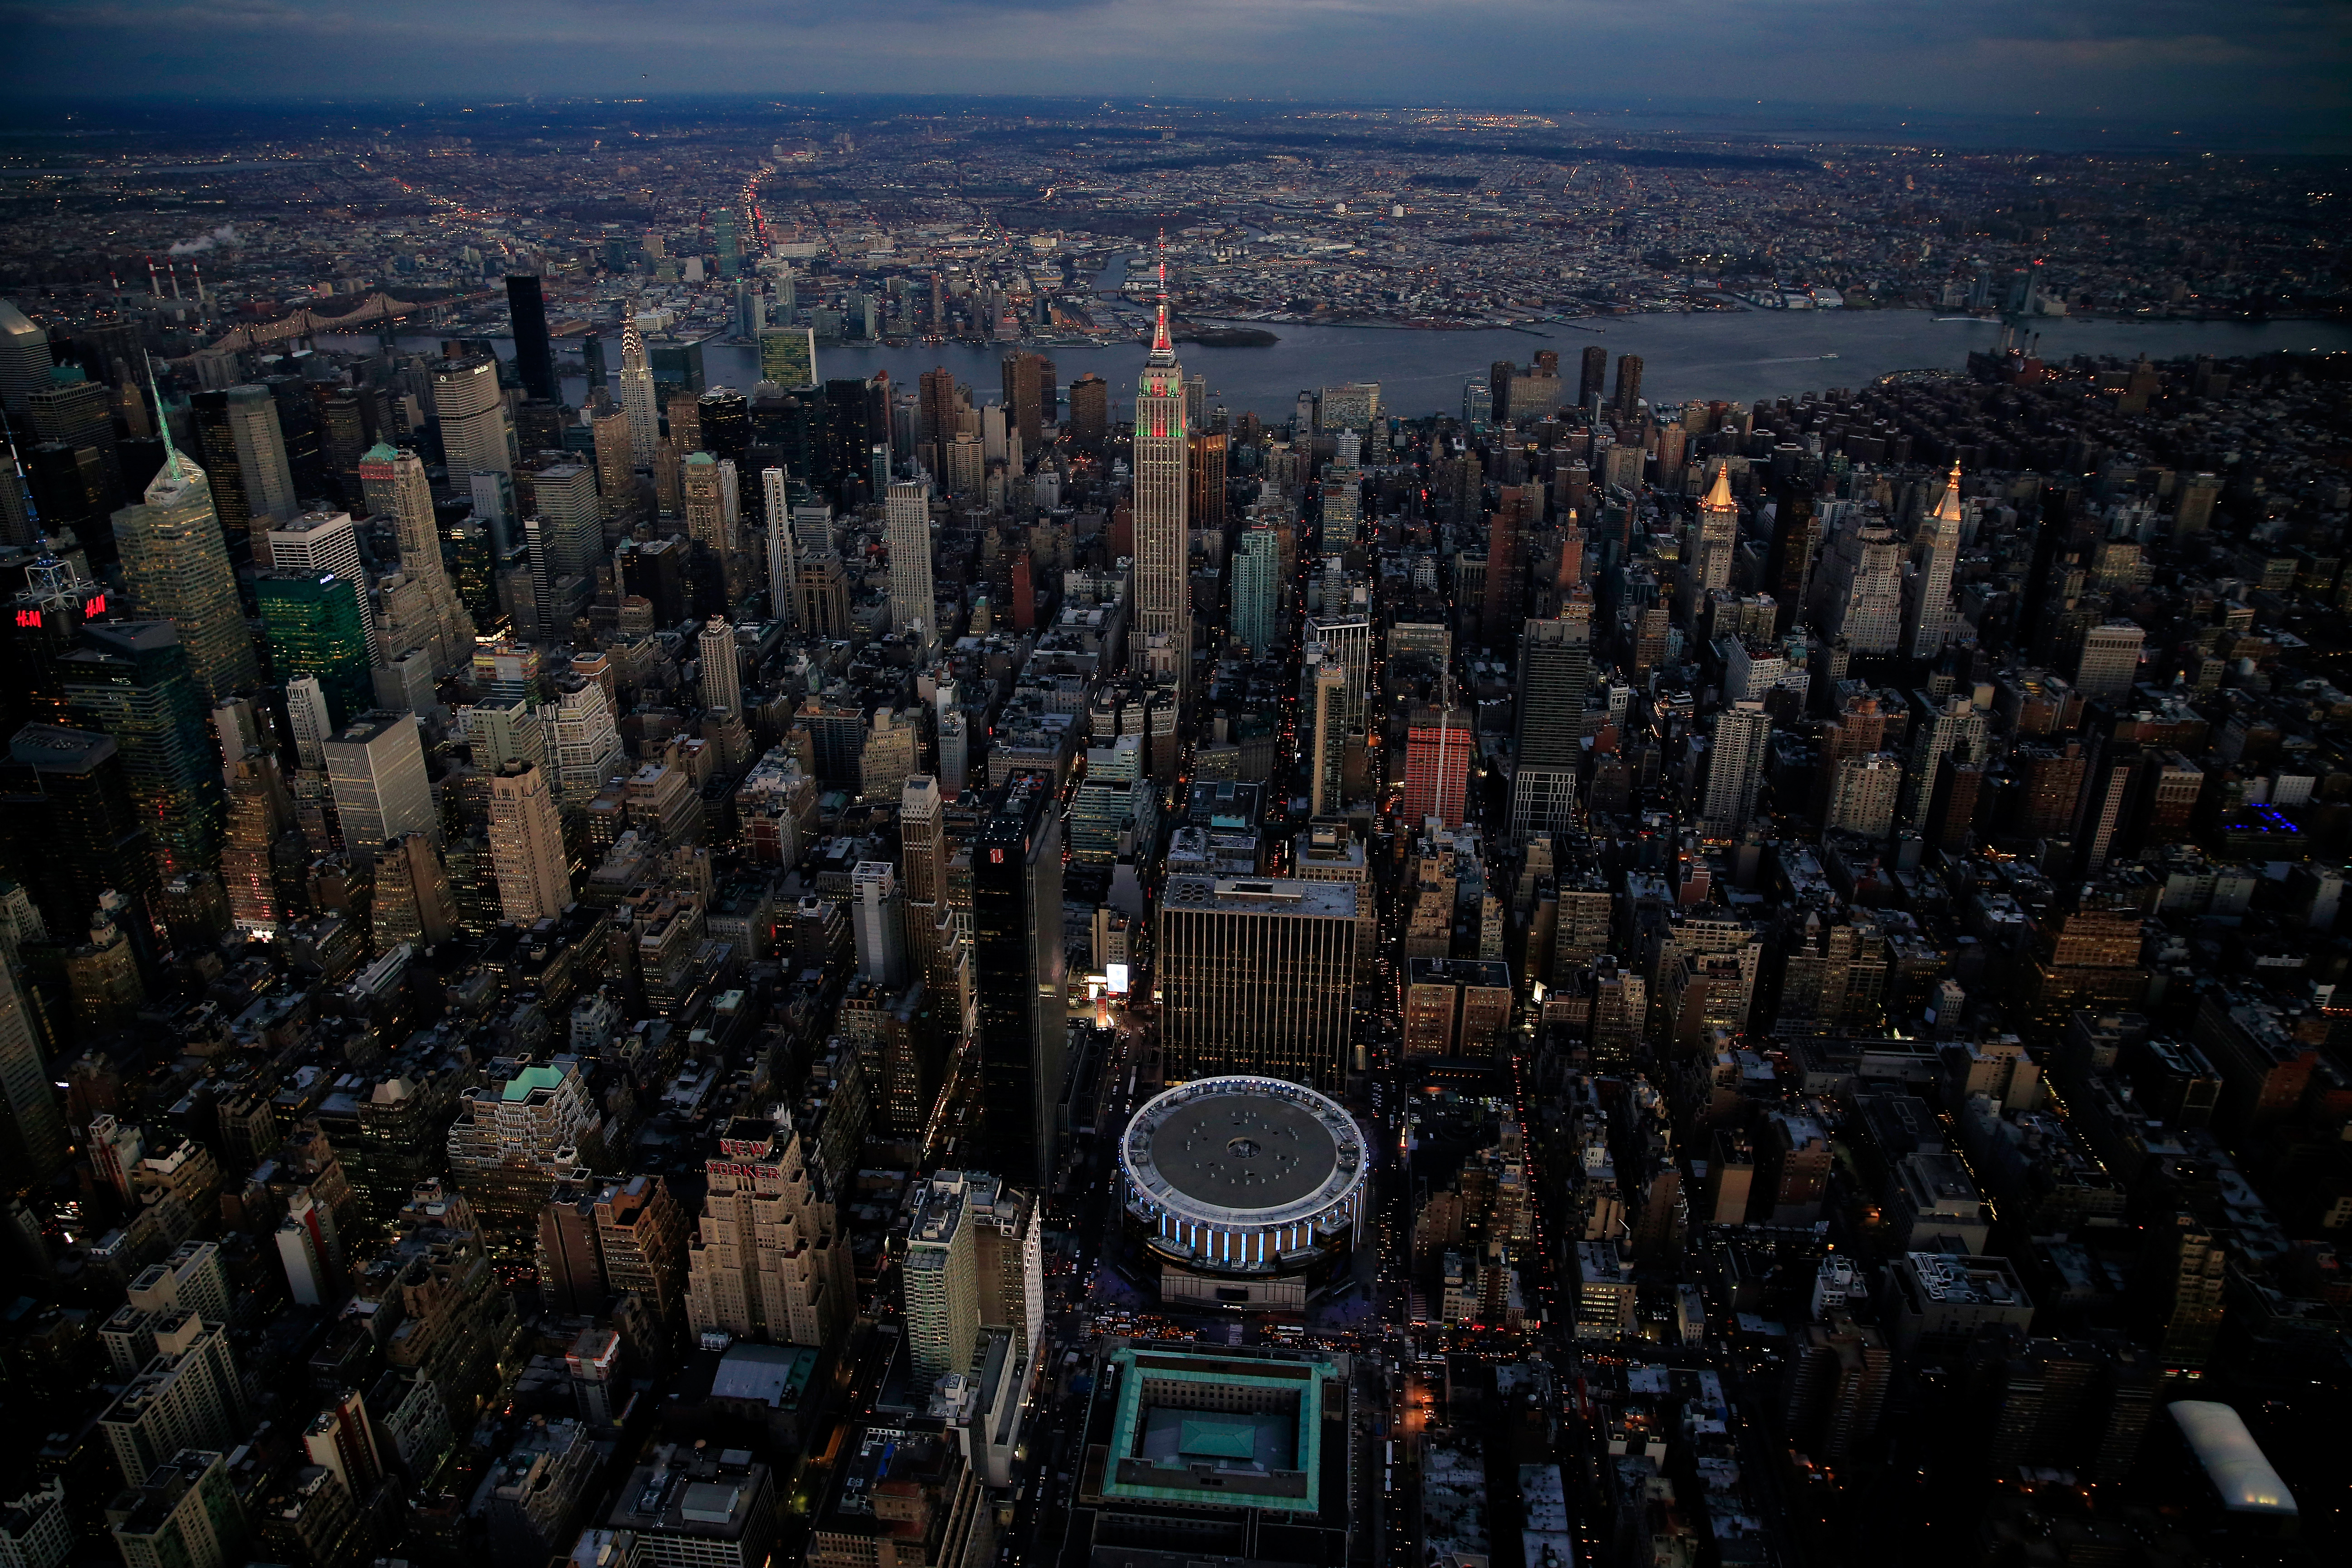 Aerial Views of New York City